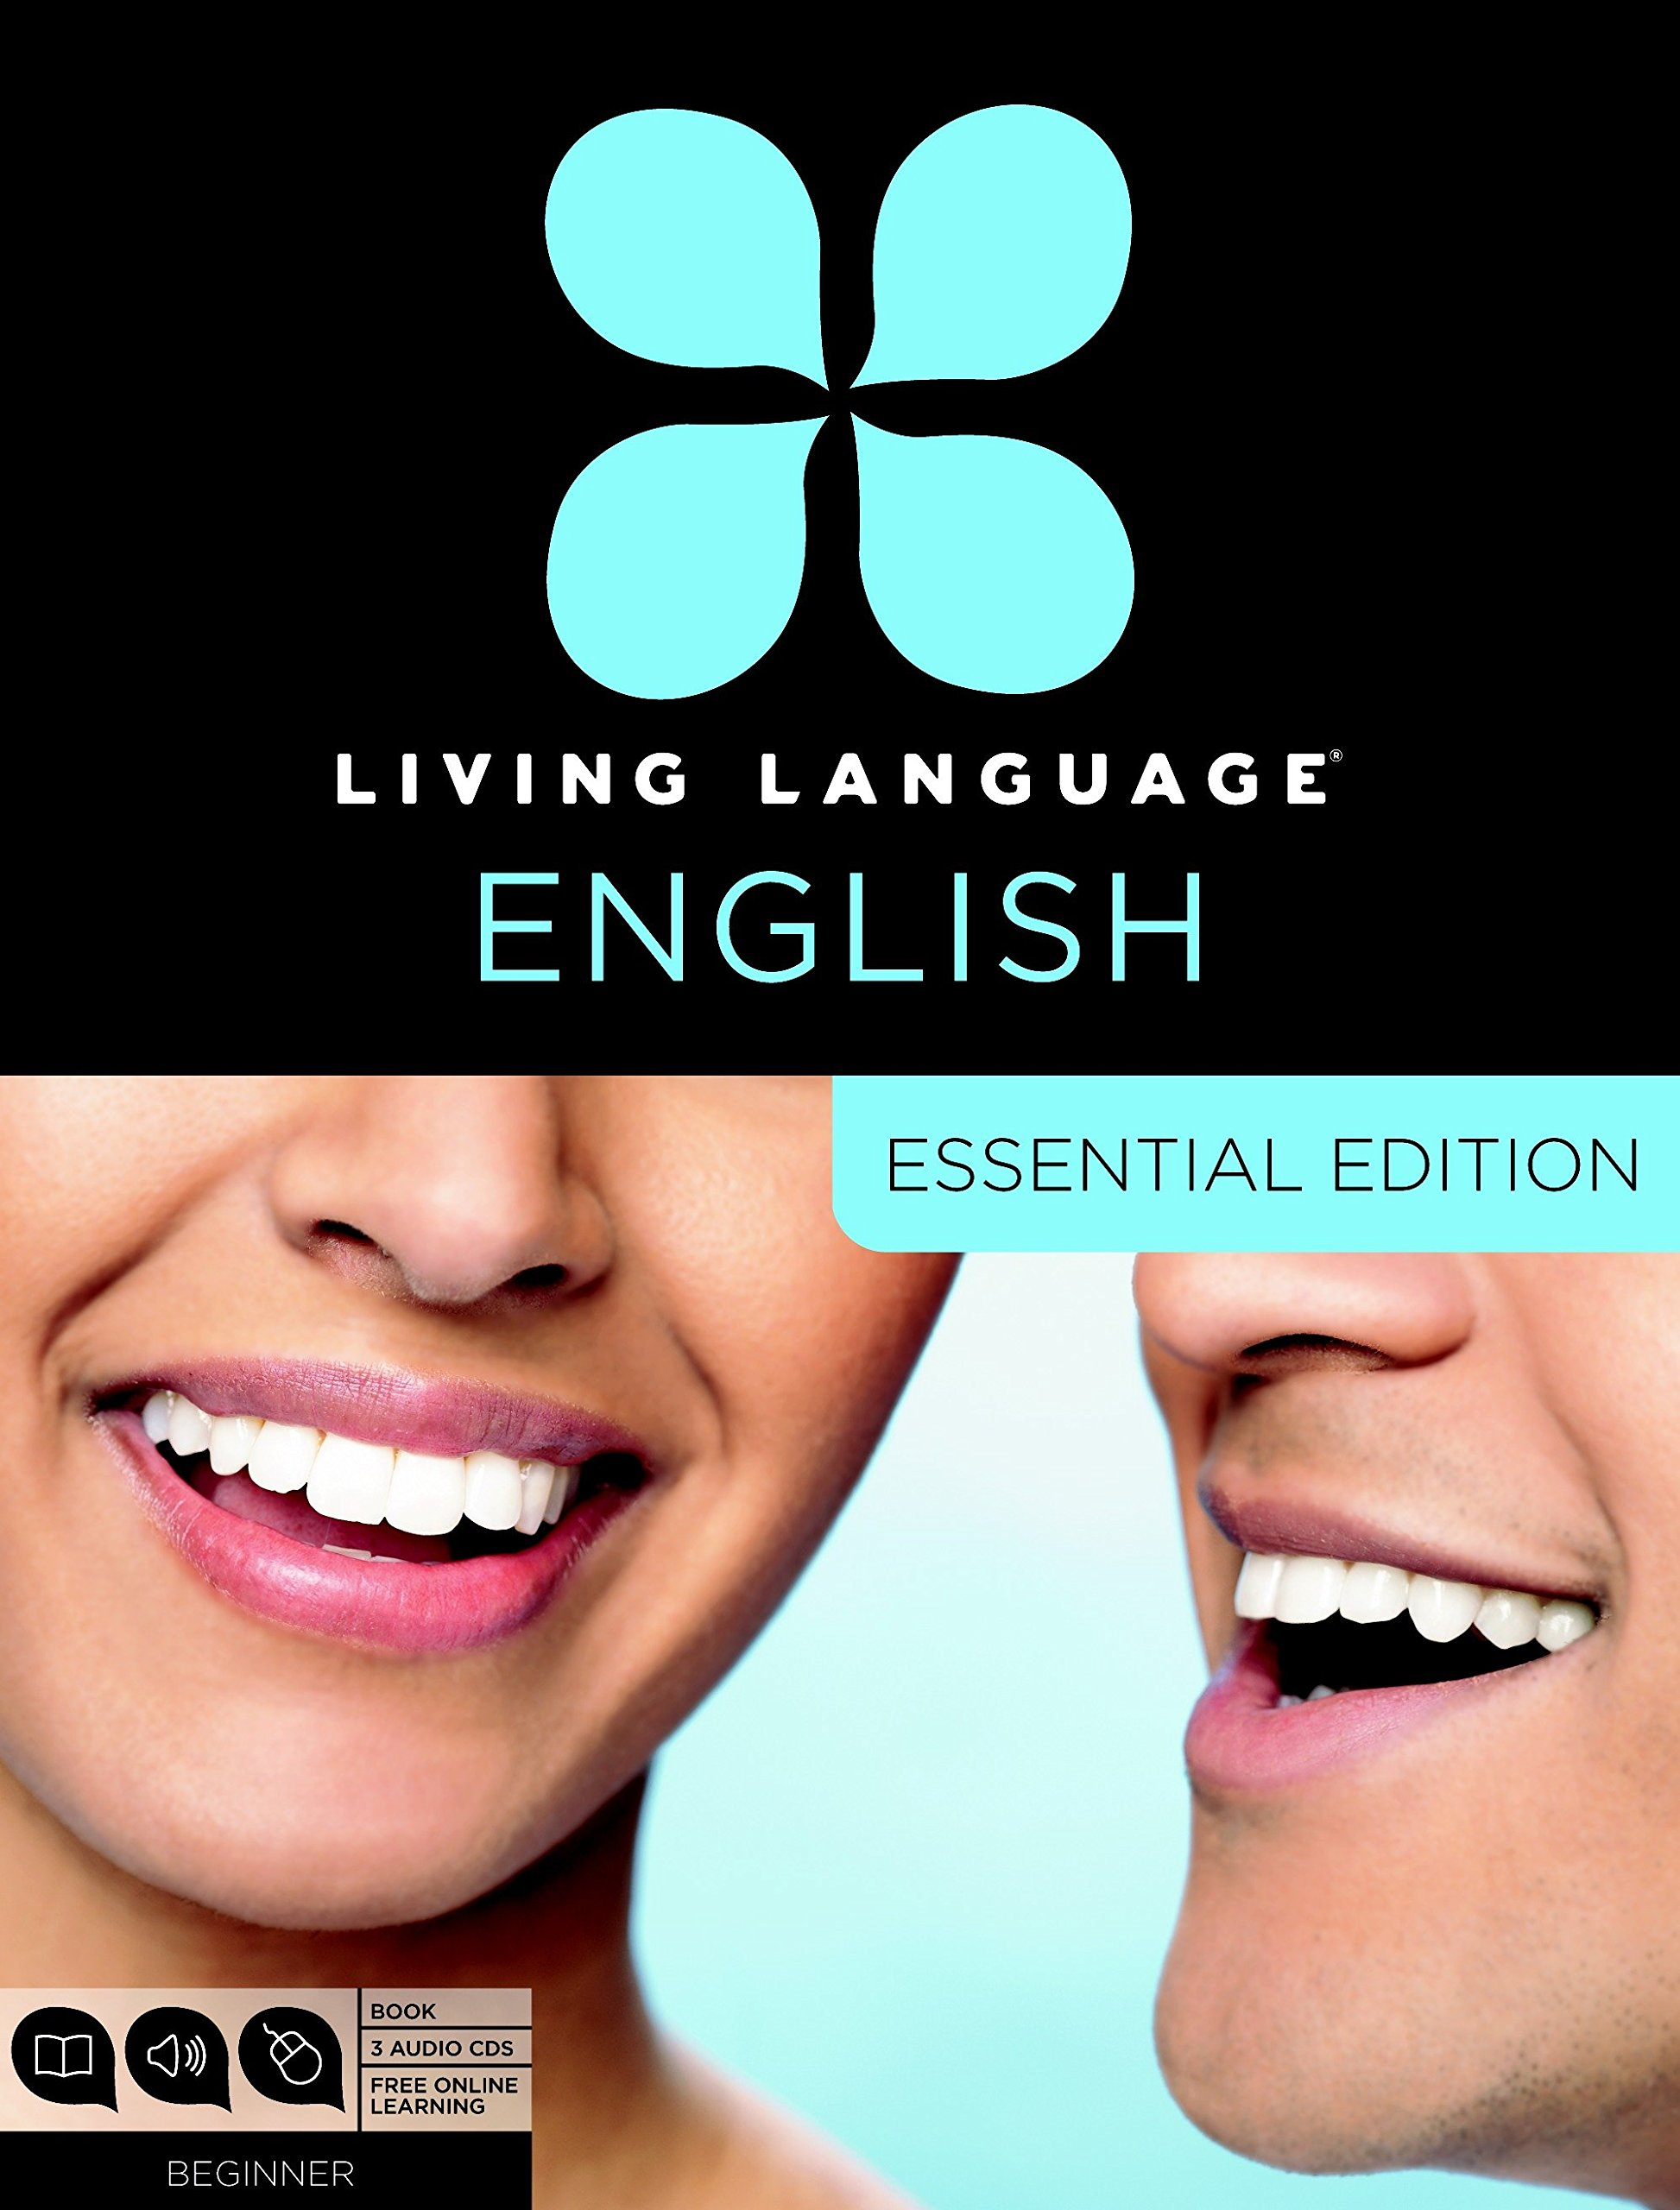 Living Language English, Essential Edition (ESL/ELL): Beginner course, including coursebook, 3 audio CDs, and free online learning